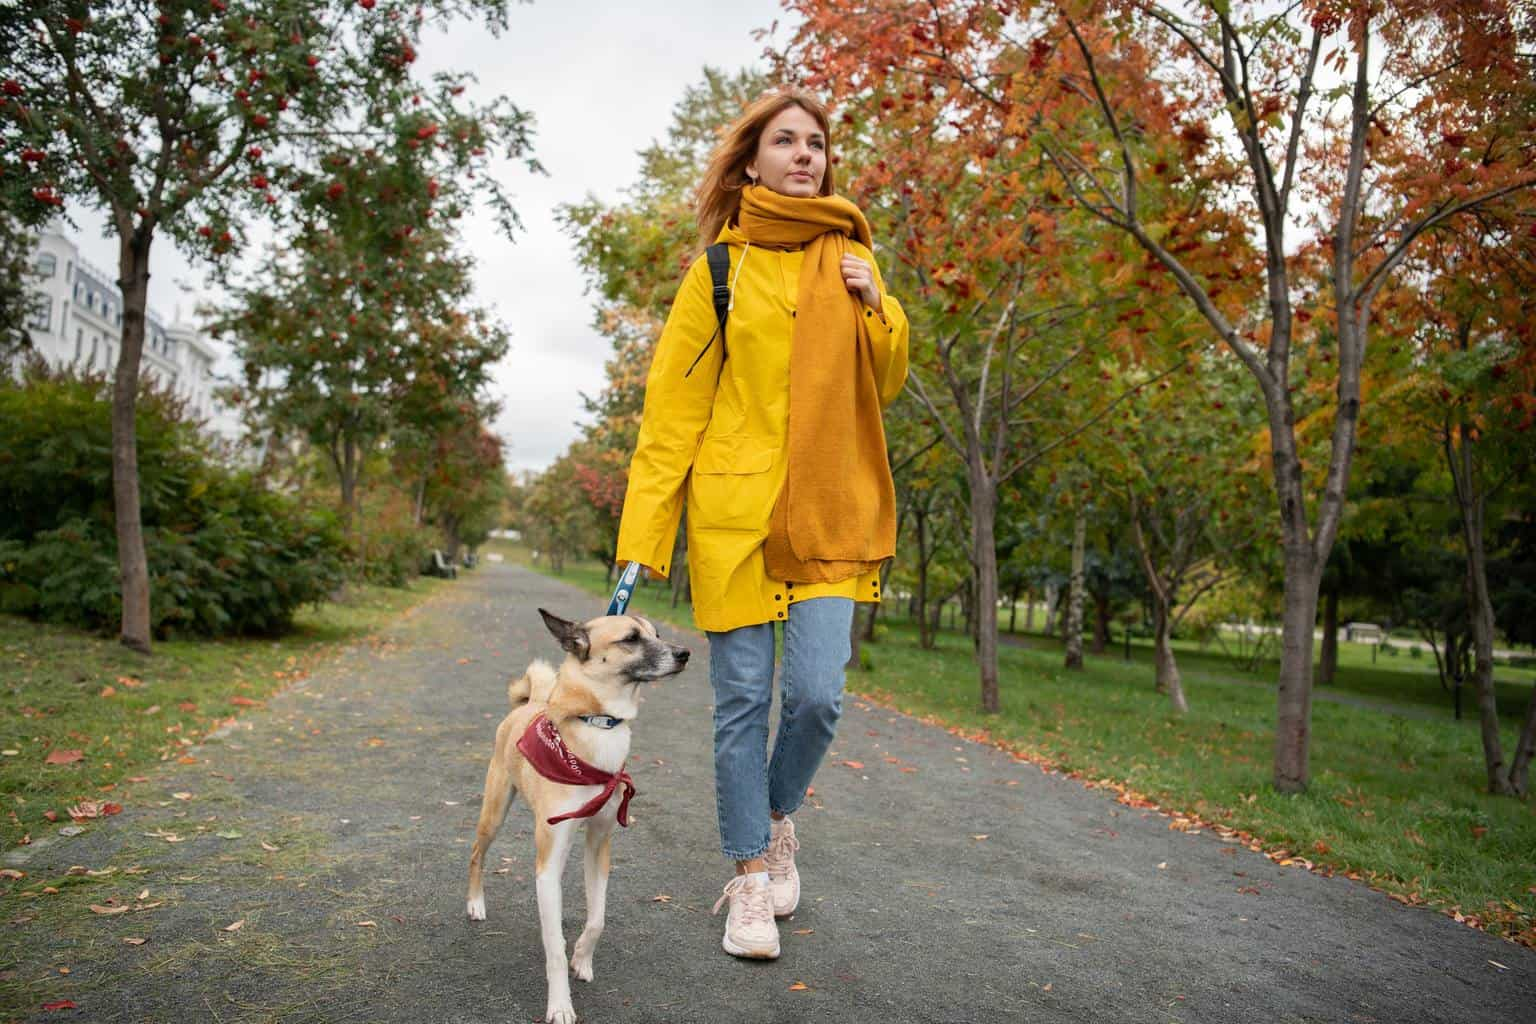 Young lady walking with dog